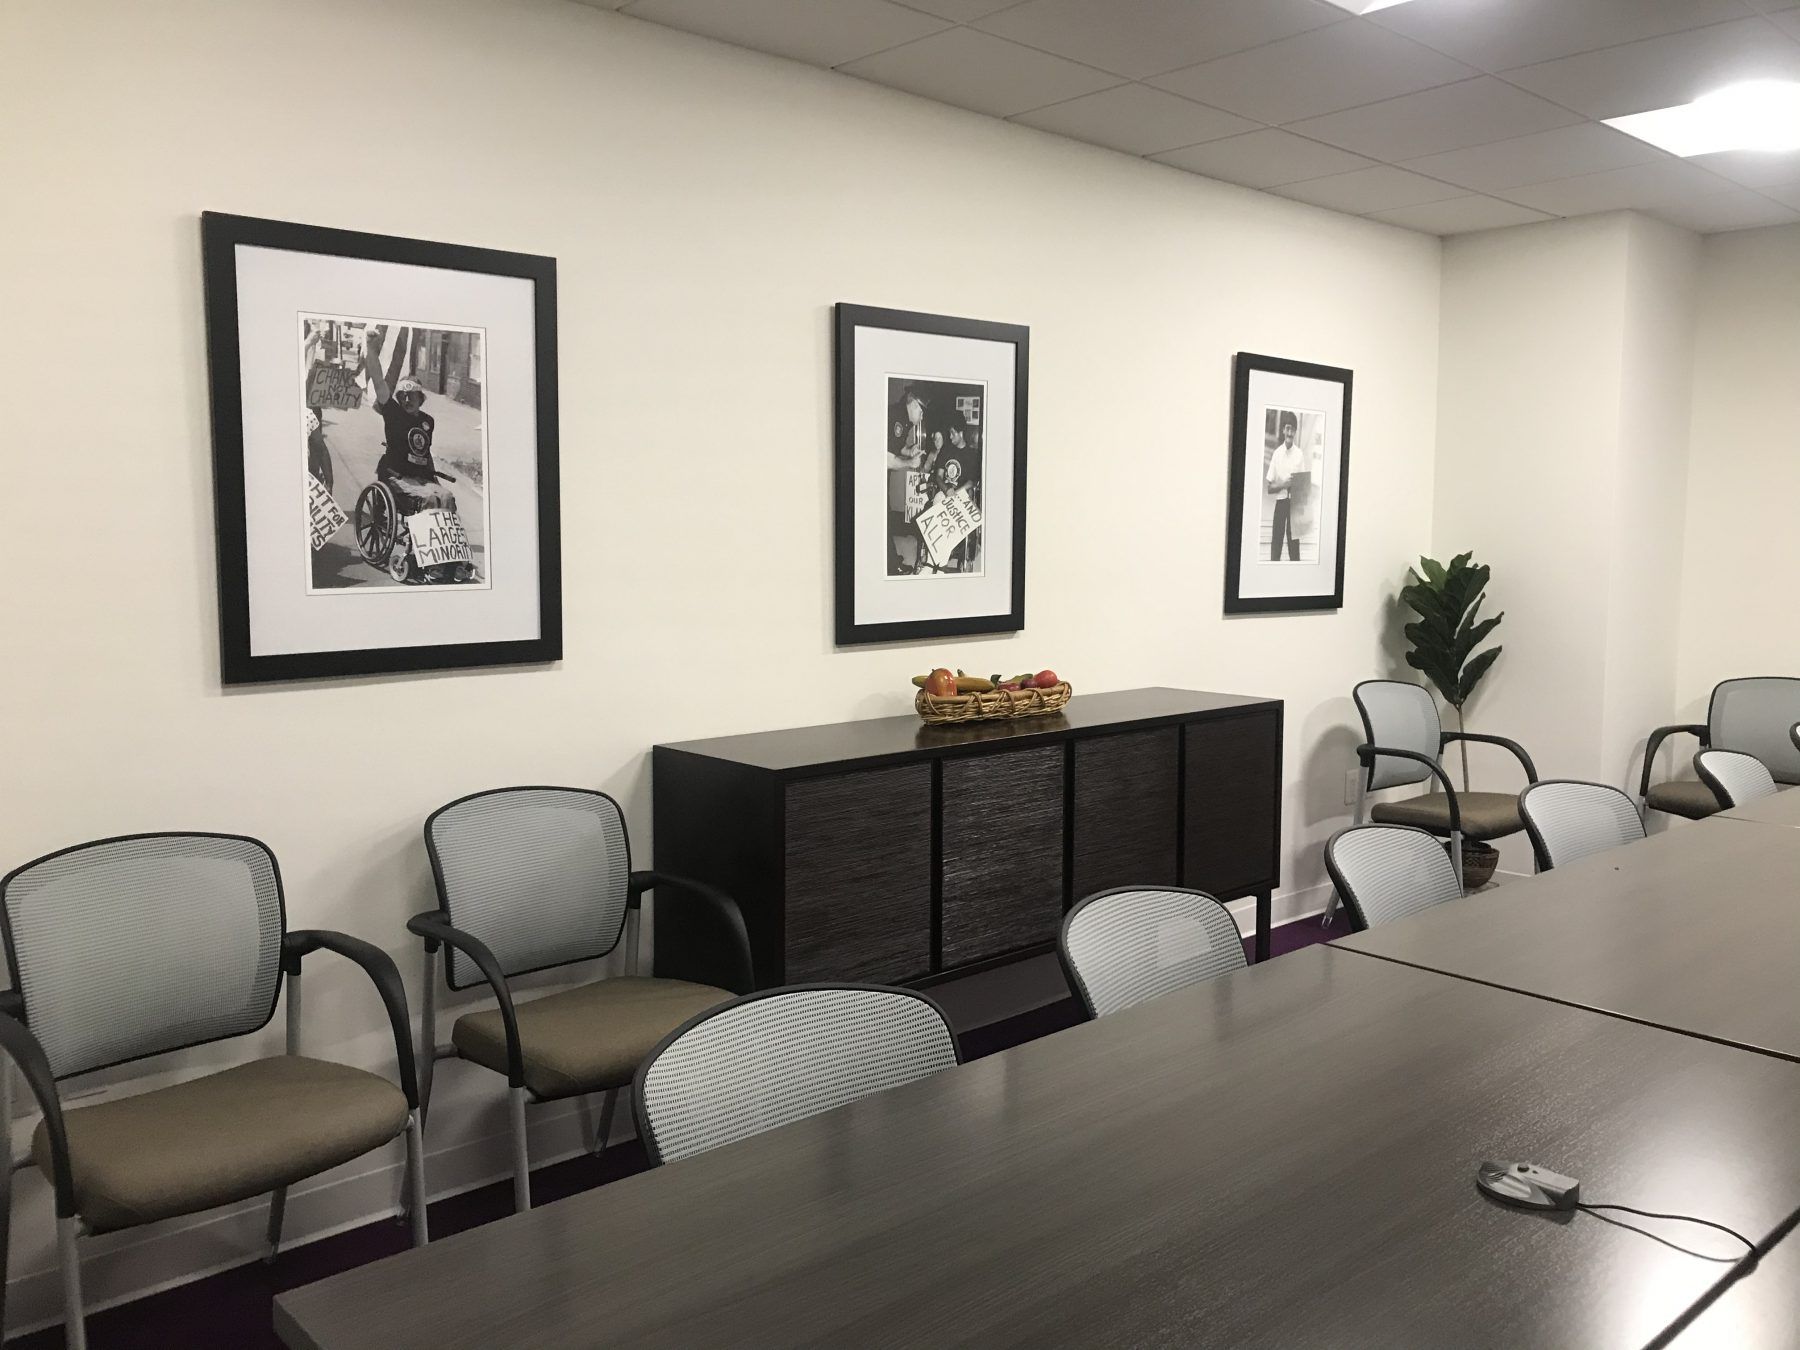 Meeting room with three black and white Tom Olin works hung in black frames